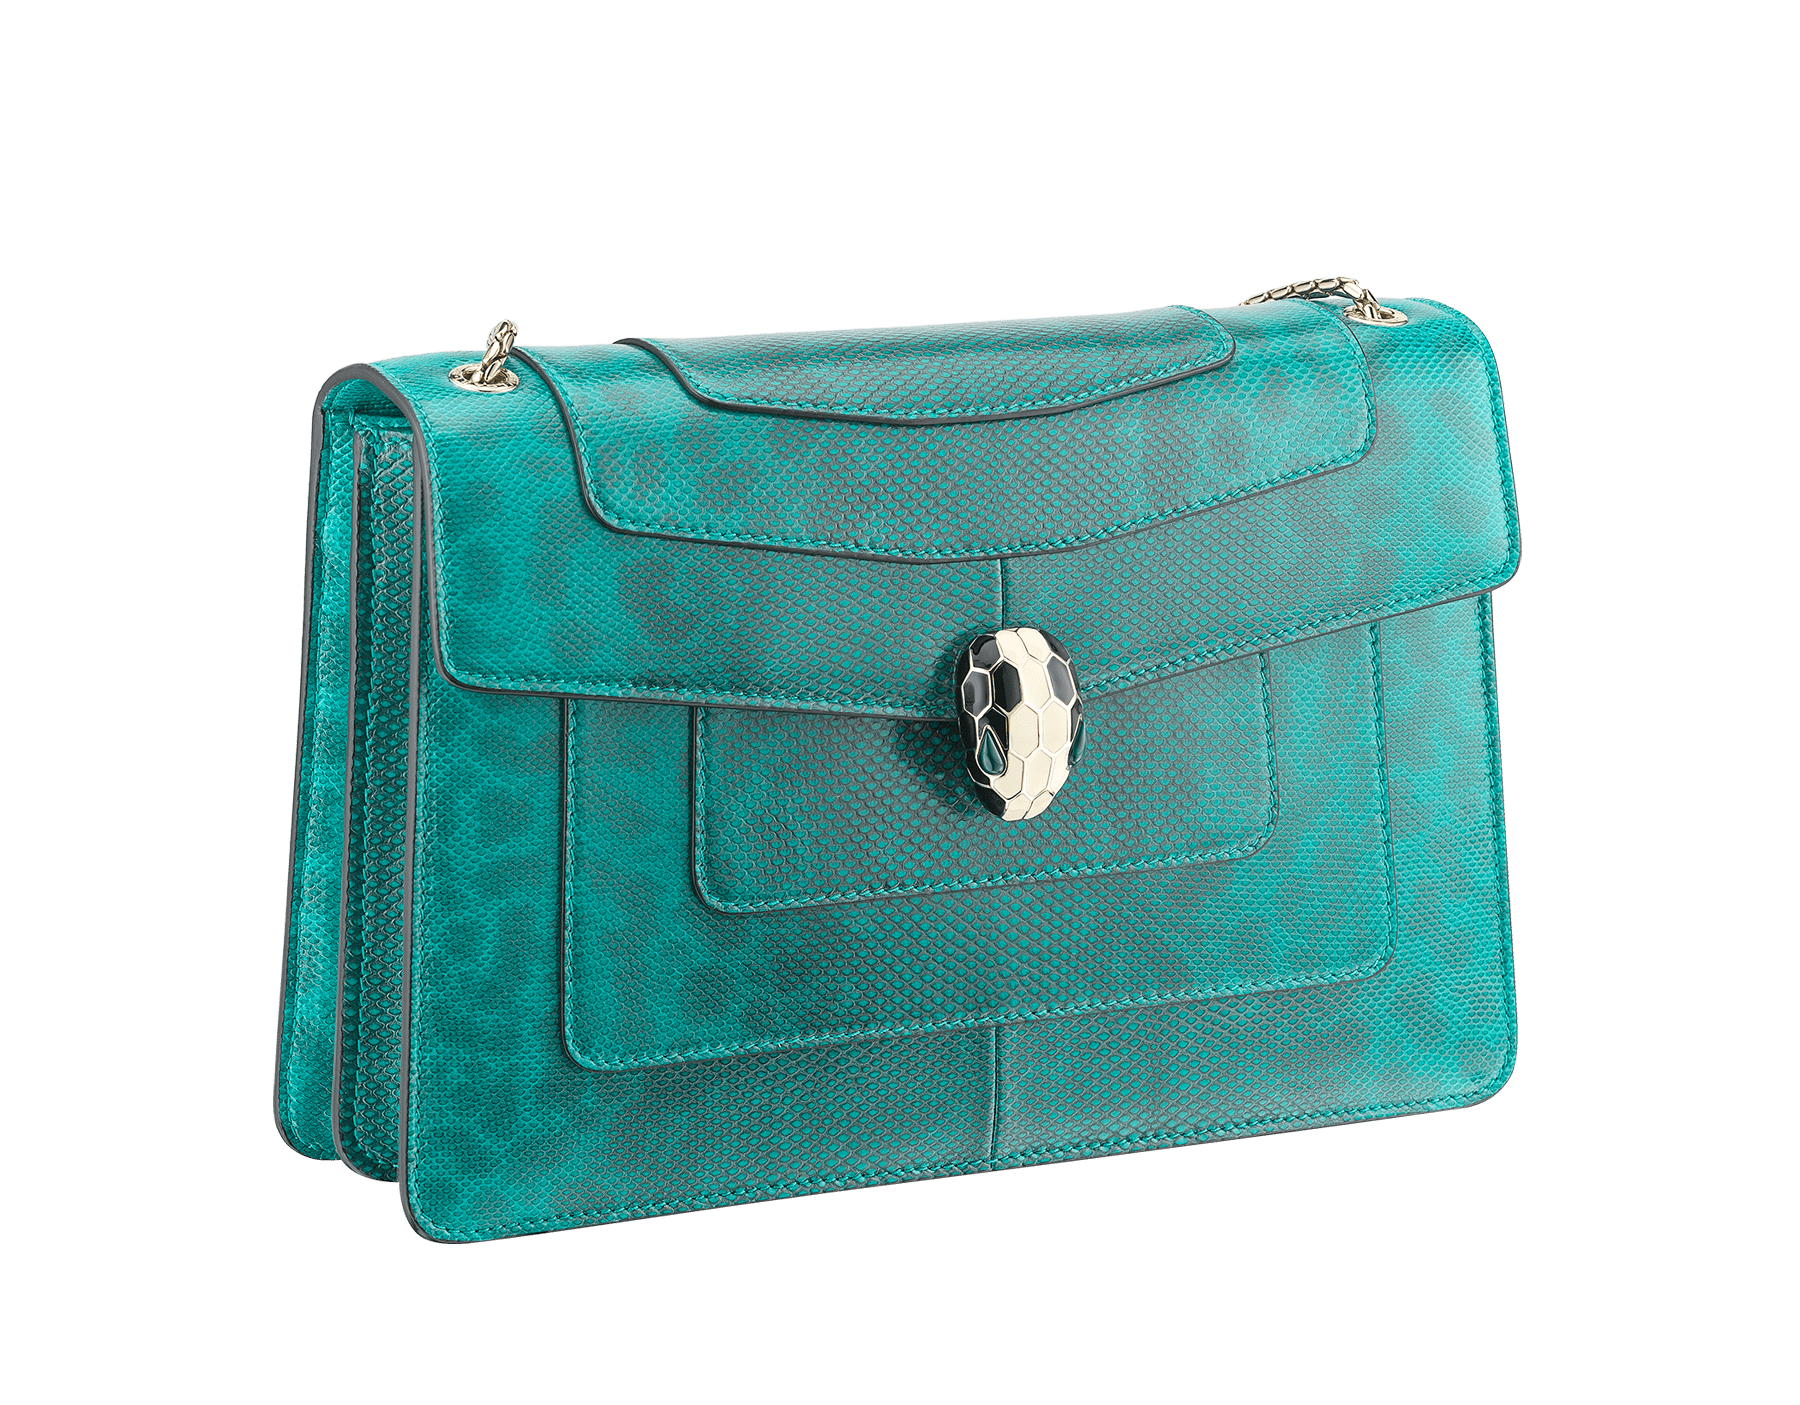 Serpenti Forever shoulder bag in tropical turquoise shiny karung skin. Snakehead closure in light gold plated brass decorated with black and white enamel, and green malachite eyes. 287917 image 2